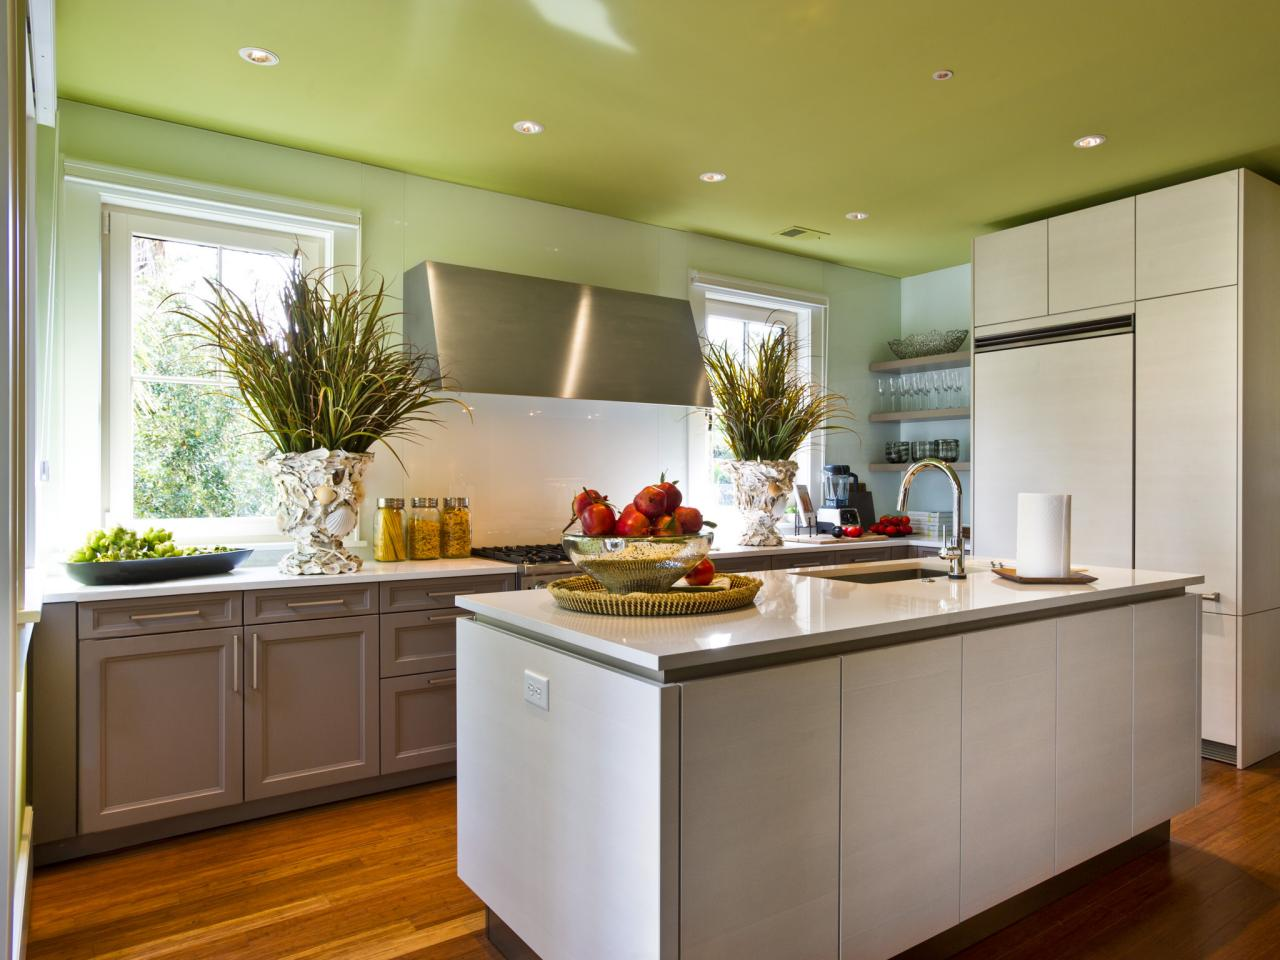 kitchen countertop colors: pictures & ideas from hgtv | hgtv